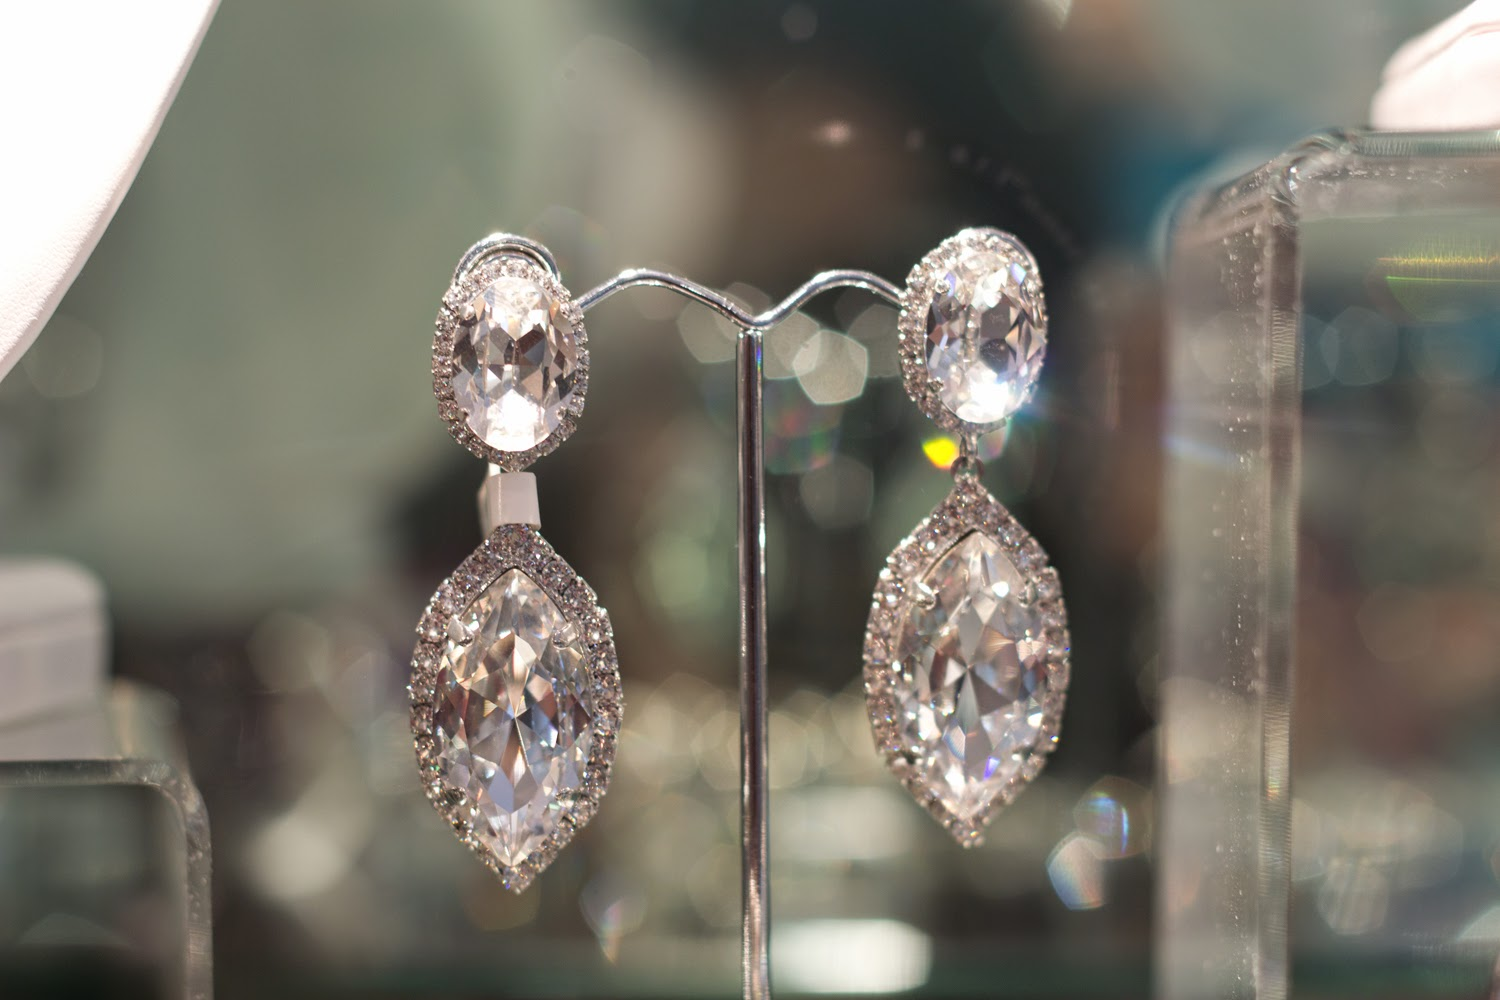 artemis-pop-up-jewellery-store-in-yorkville, crystal-earrings, beautiful-collection